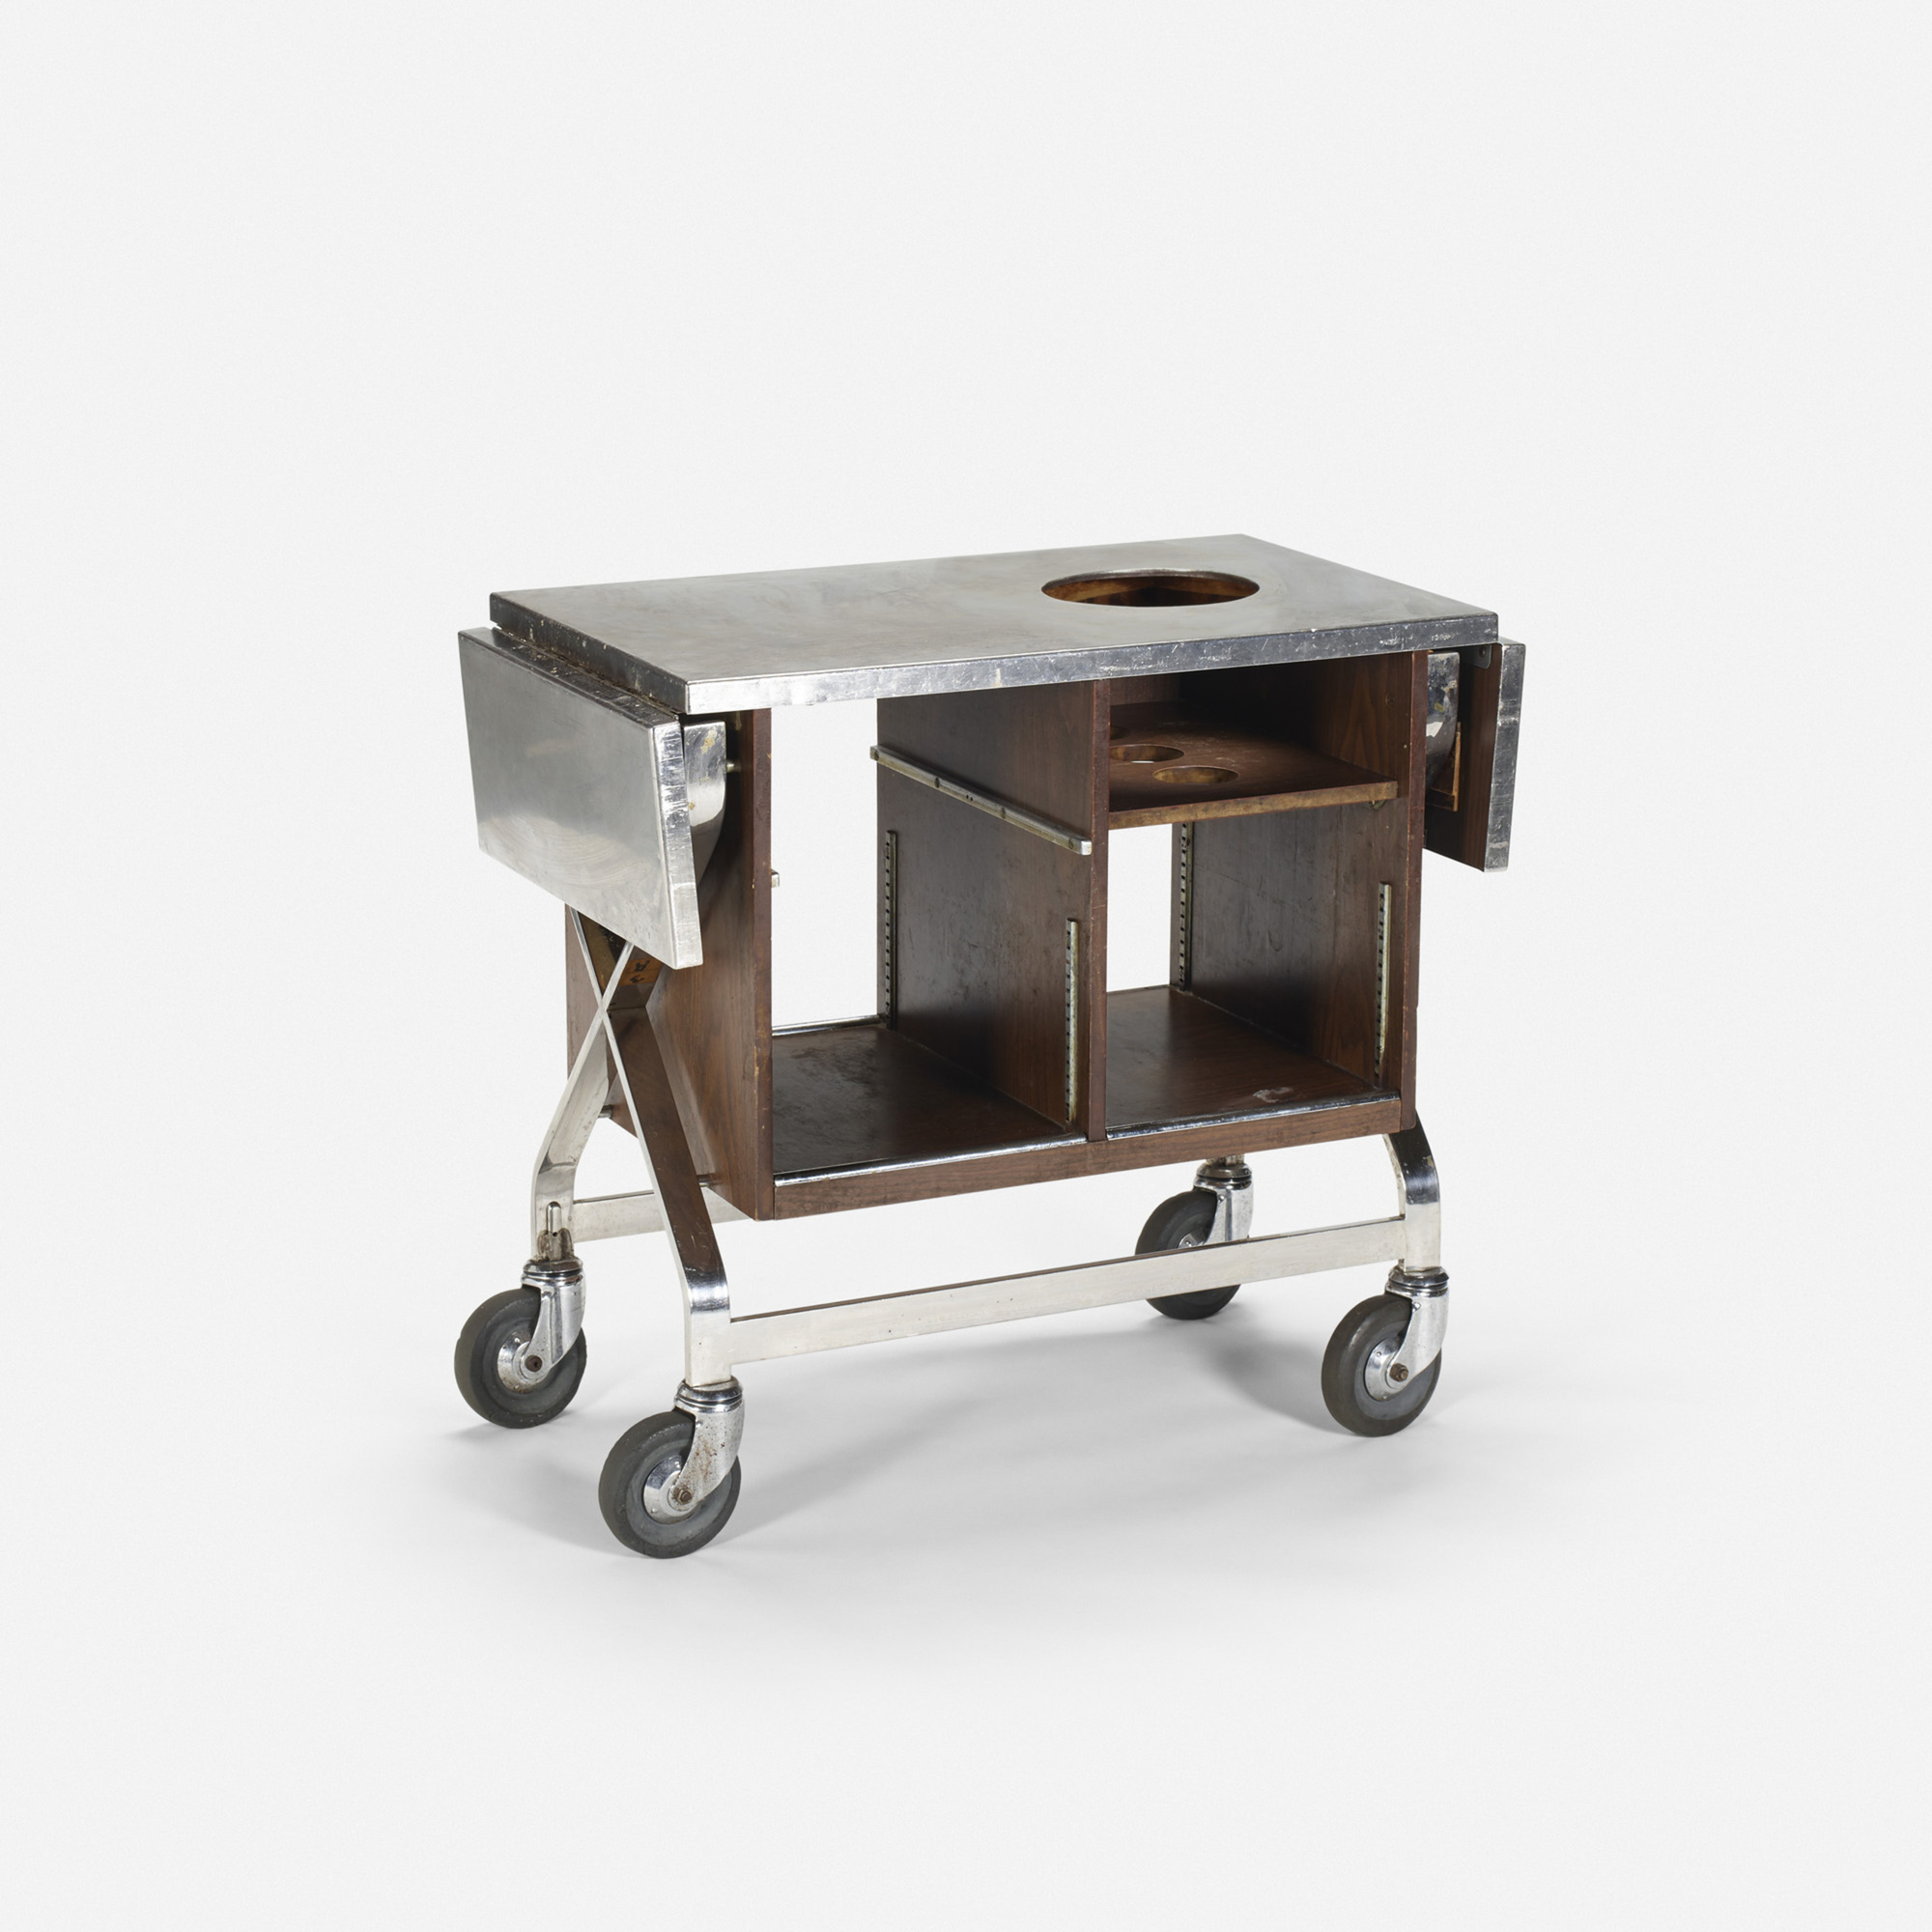 711: Garth and Ada Louise Huxtable / Serving cart from The Four Seasons (1 of 1)